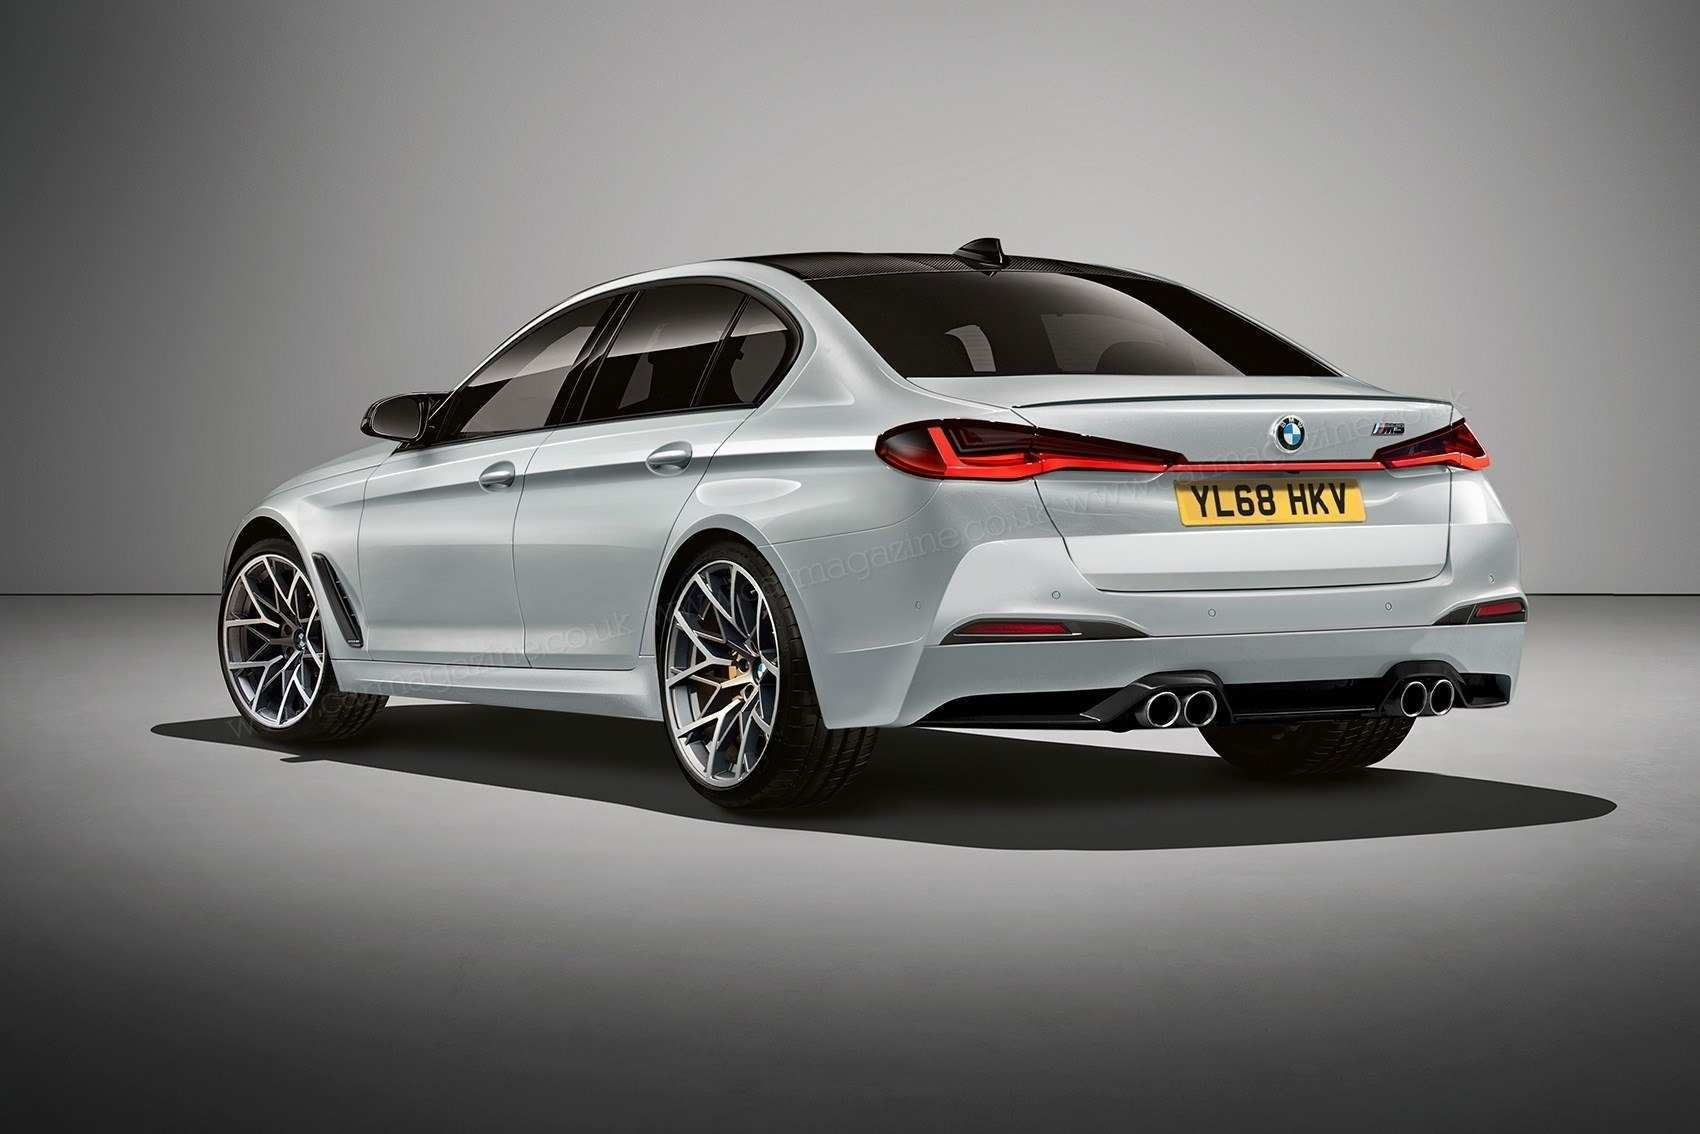 55 The 2020 Bmw 5 Series Release Date And Concept